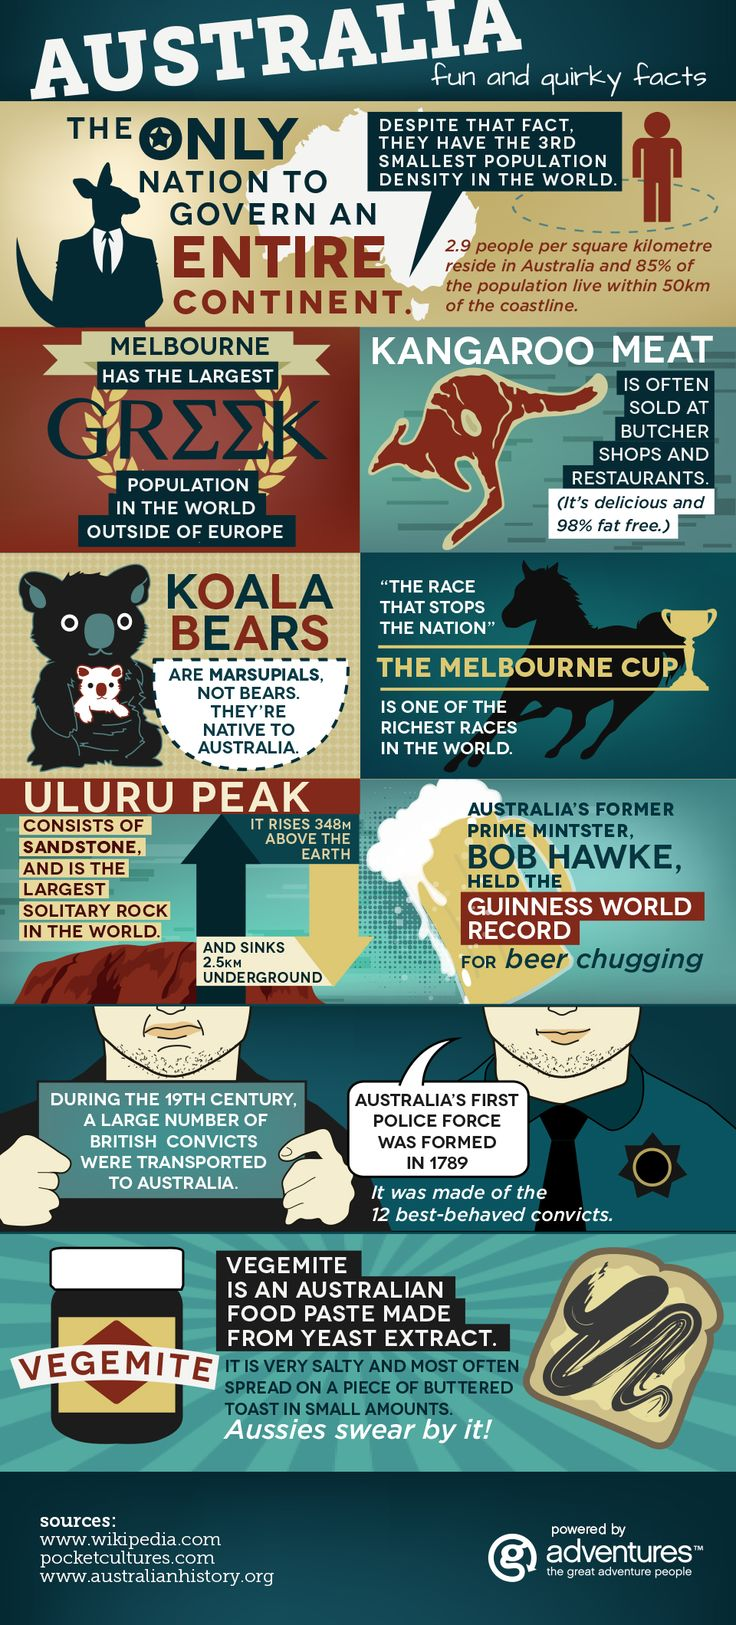 G Adventures own, Liz Kucharska illustrates some fun facts about the land down under - Australia.